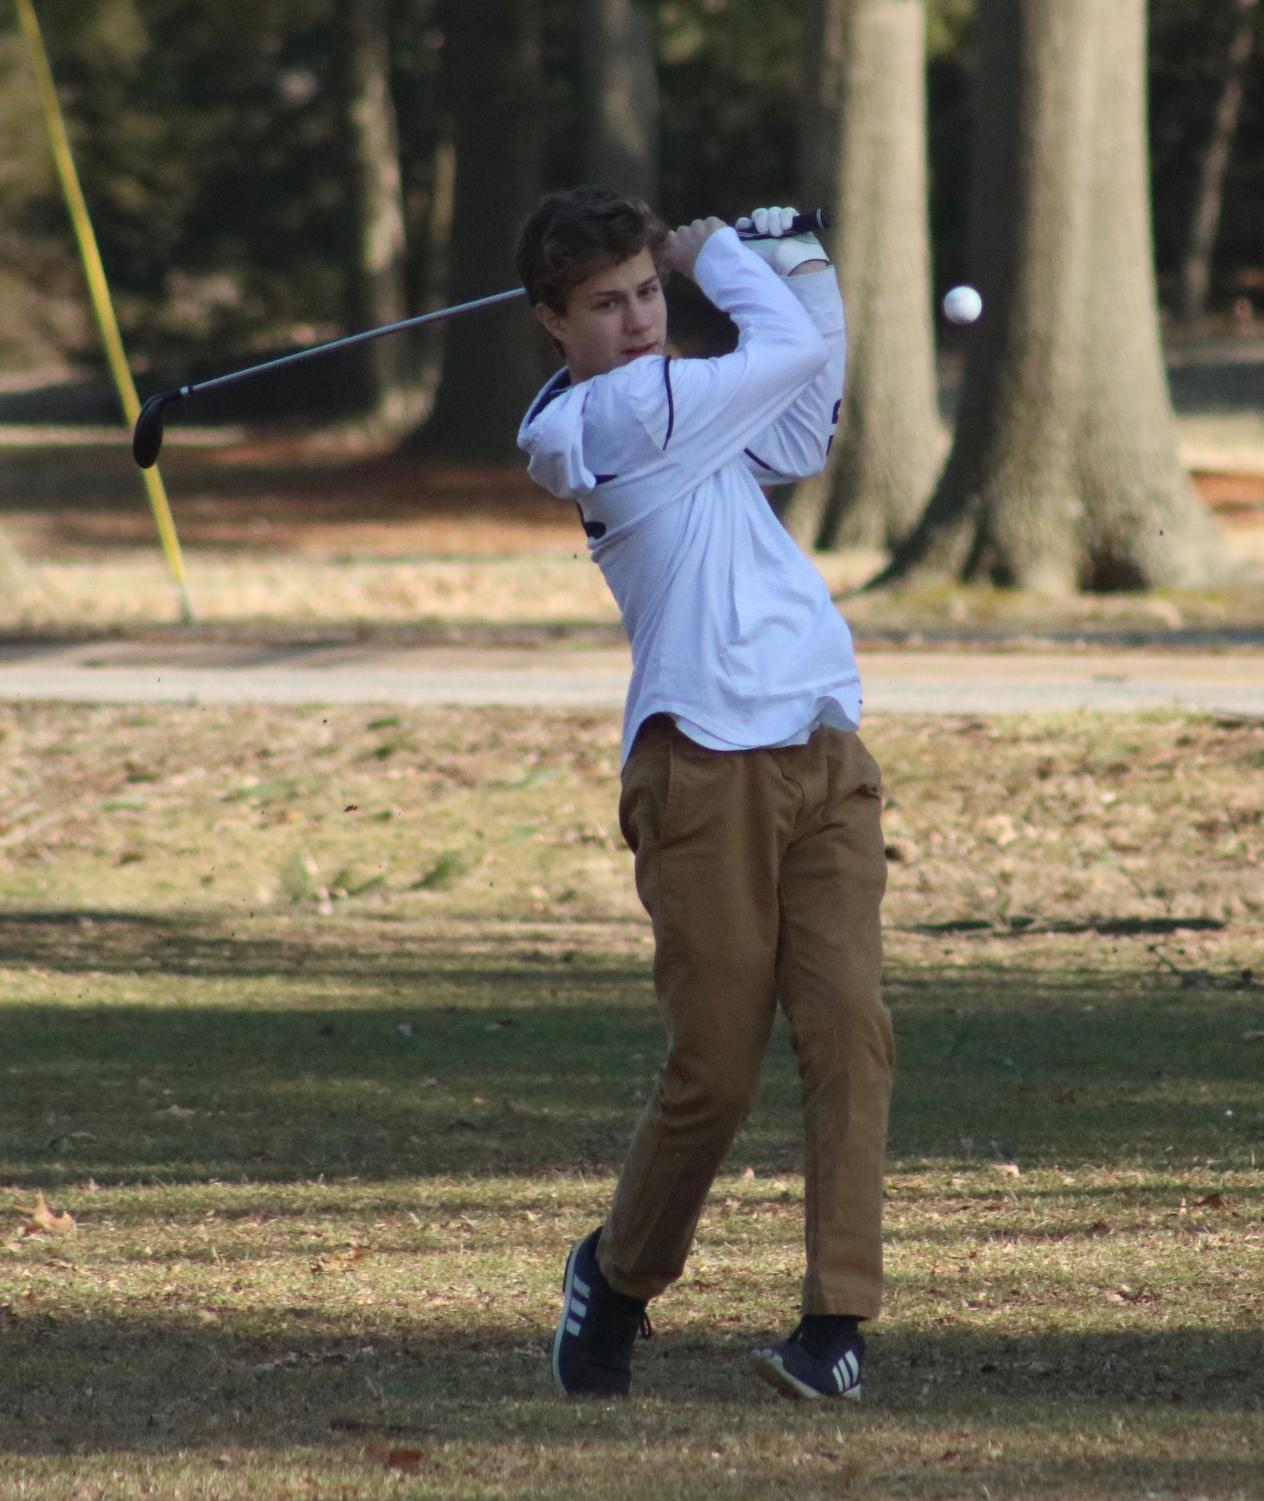 Wilson+Bruns%2C+freshman%2C+follows+his+ball+flight+during+his+tryout+round.